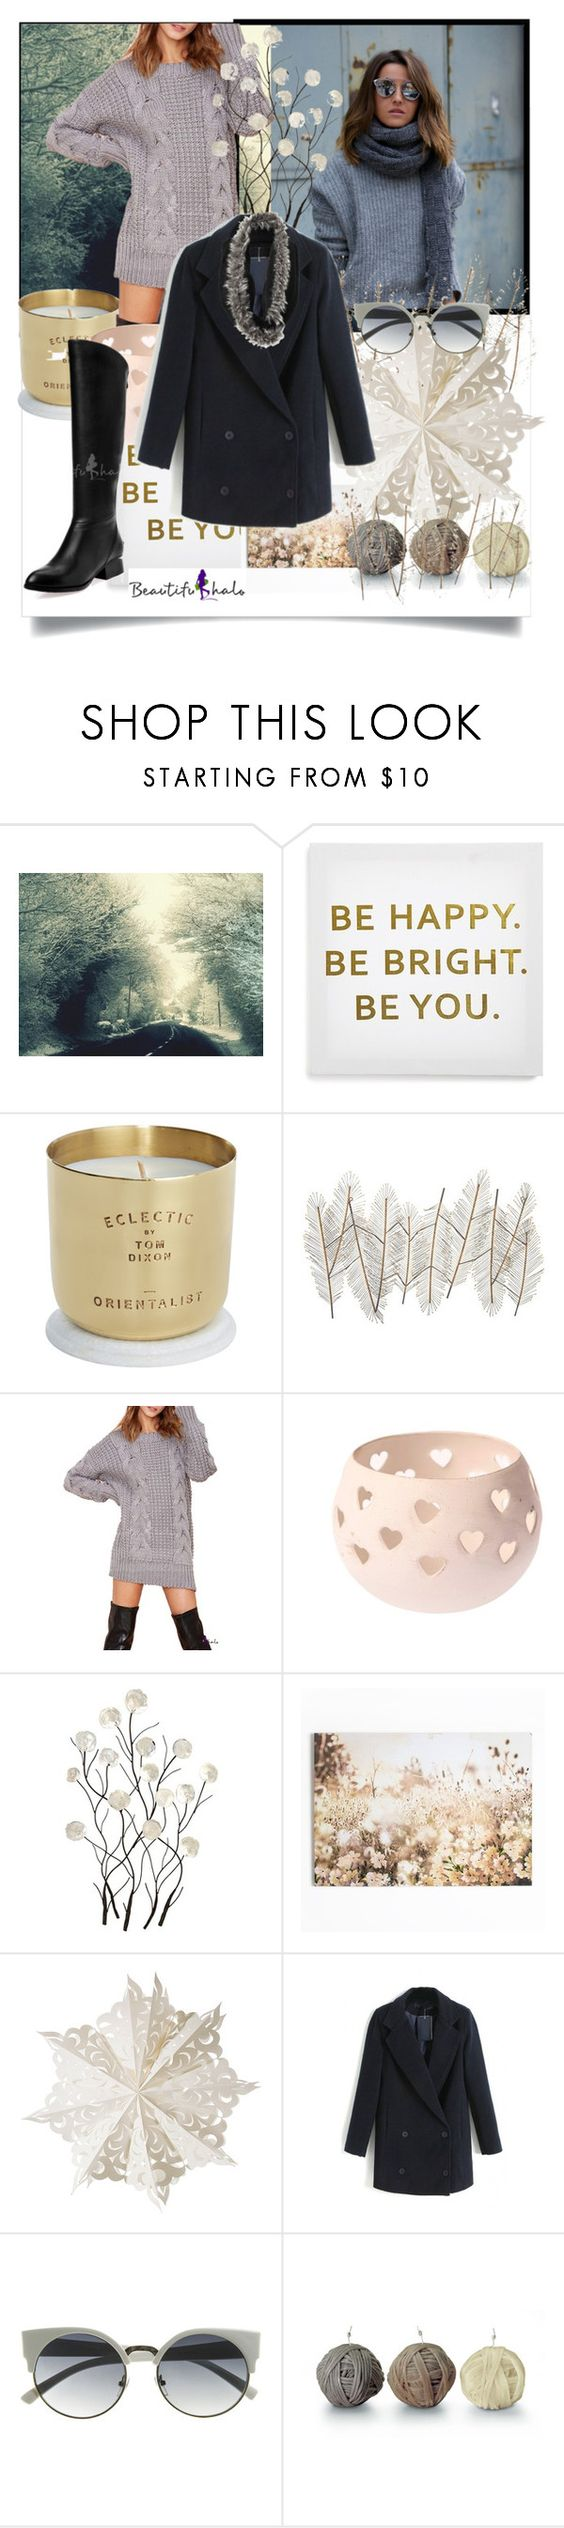 """""""Beautifulhalo 11."""" by suncokret-12 ❤ liked on Polyvore featuring Ankit, Tom Dixon, Universal Lighting and Decor, Graham & Brown, Dot & Bo, CAbi, vintage and bhalo"""